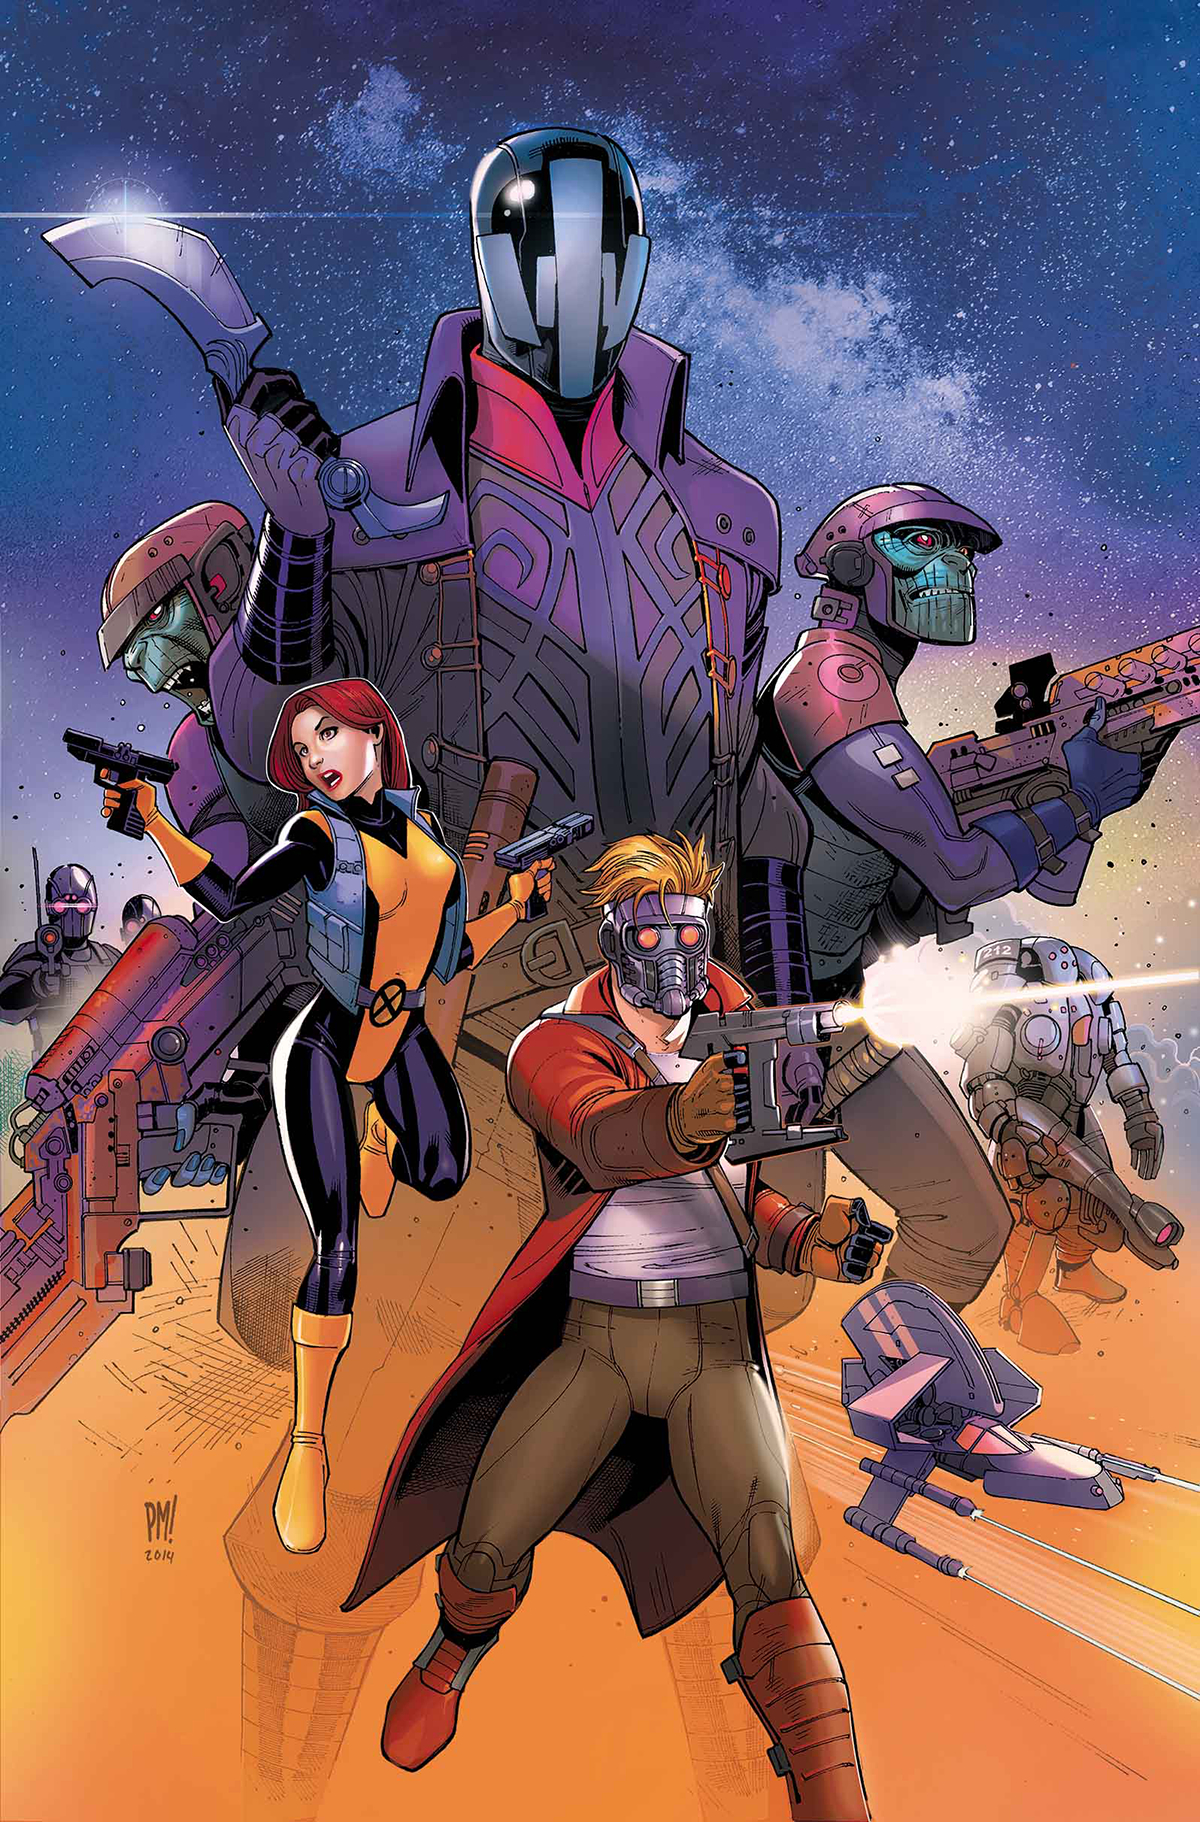 LEGENDARY STAR LORD #3